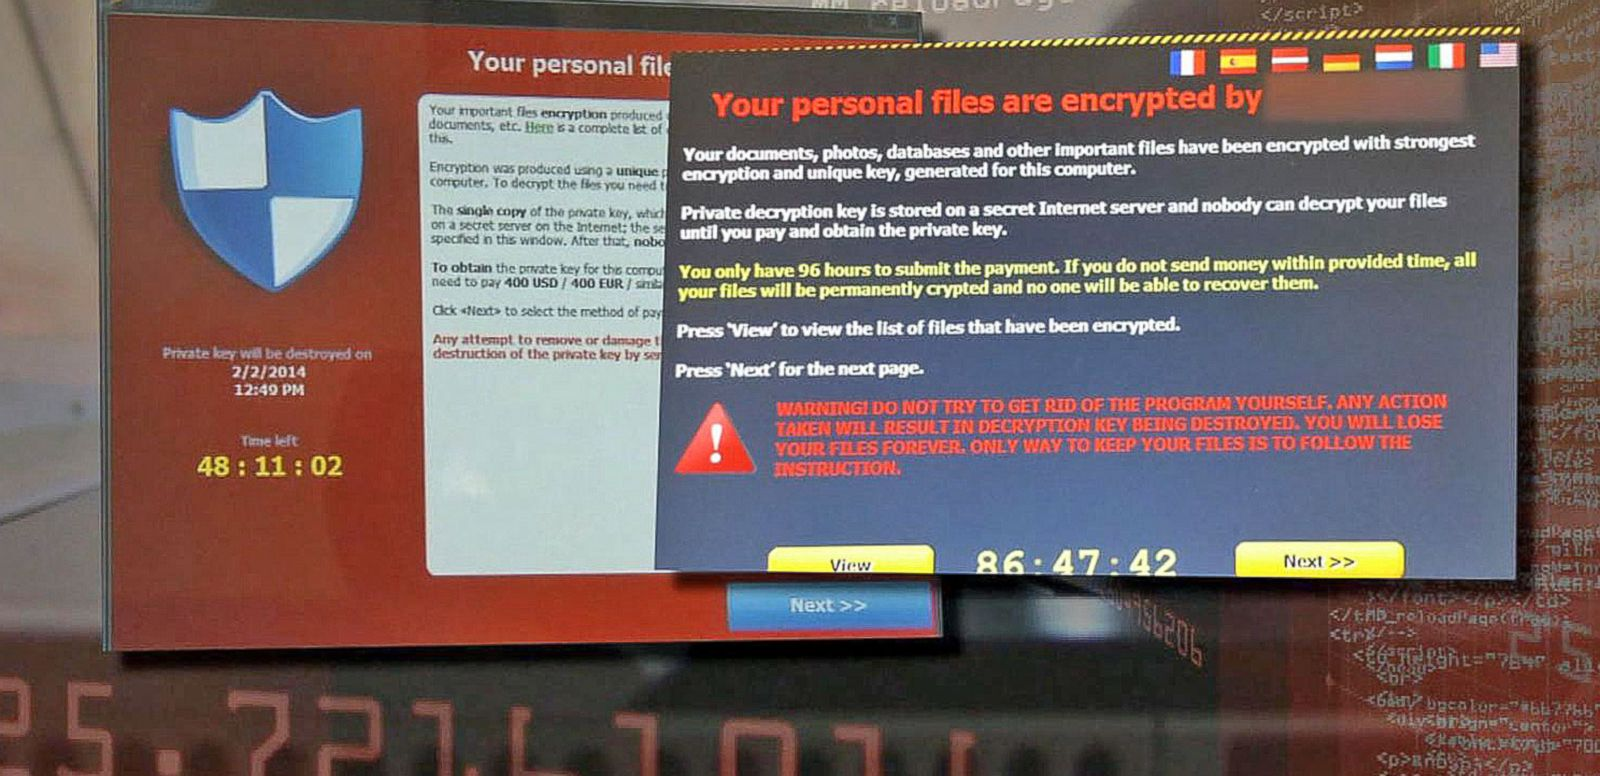 VIDEO: Security Experts Warn Ransomware Attacks Will Grow in 2016